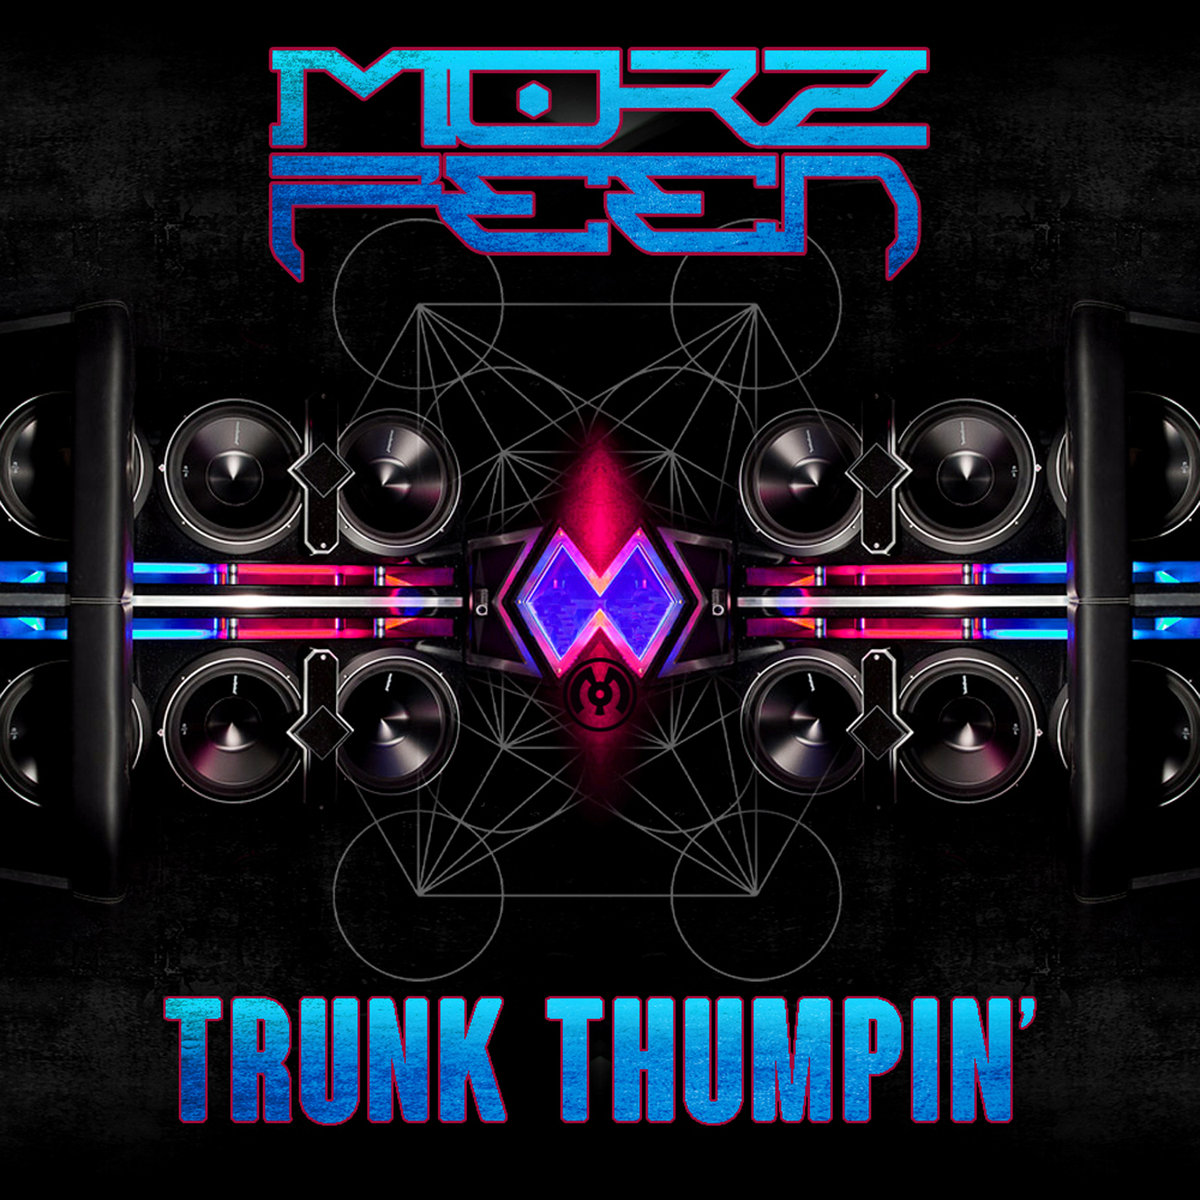 MorzFeen - Trunk Thumpin'